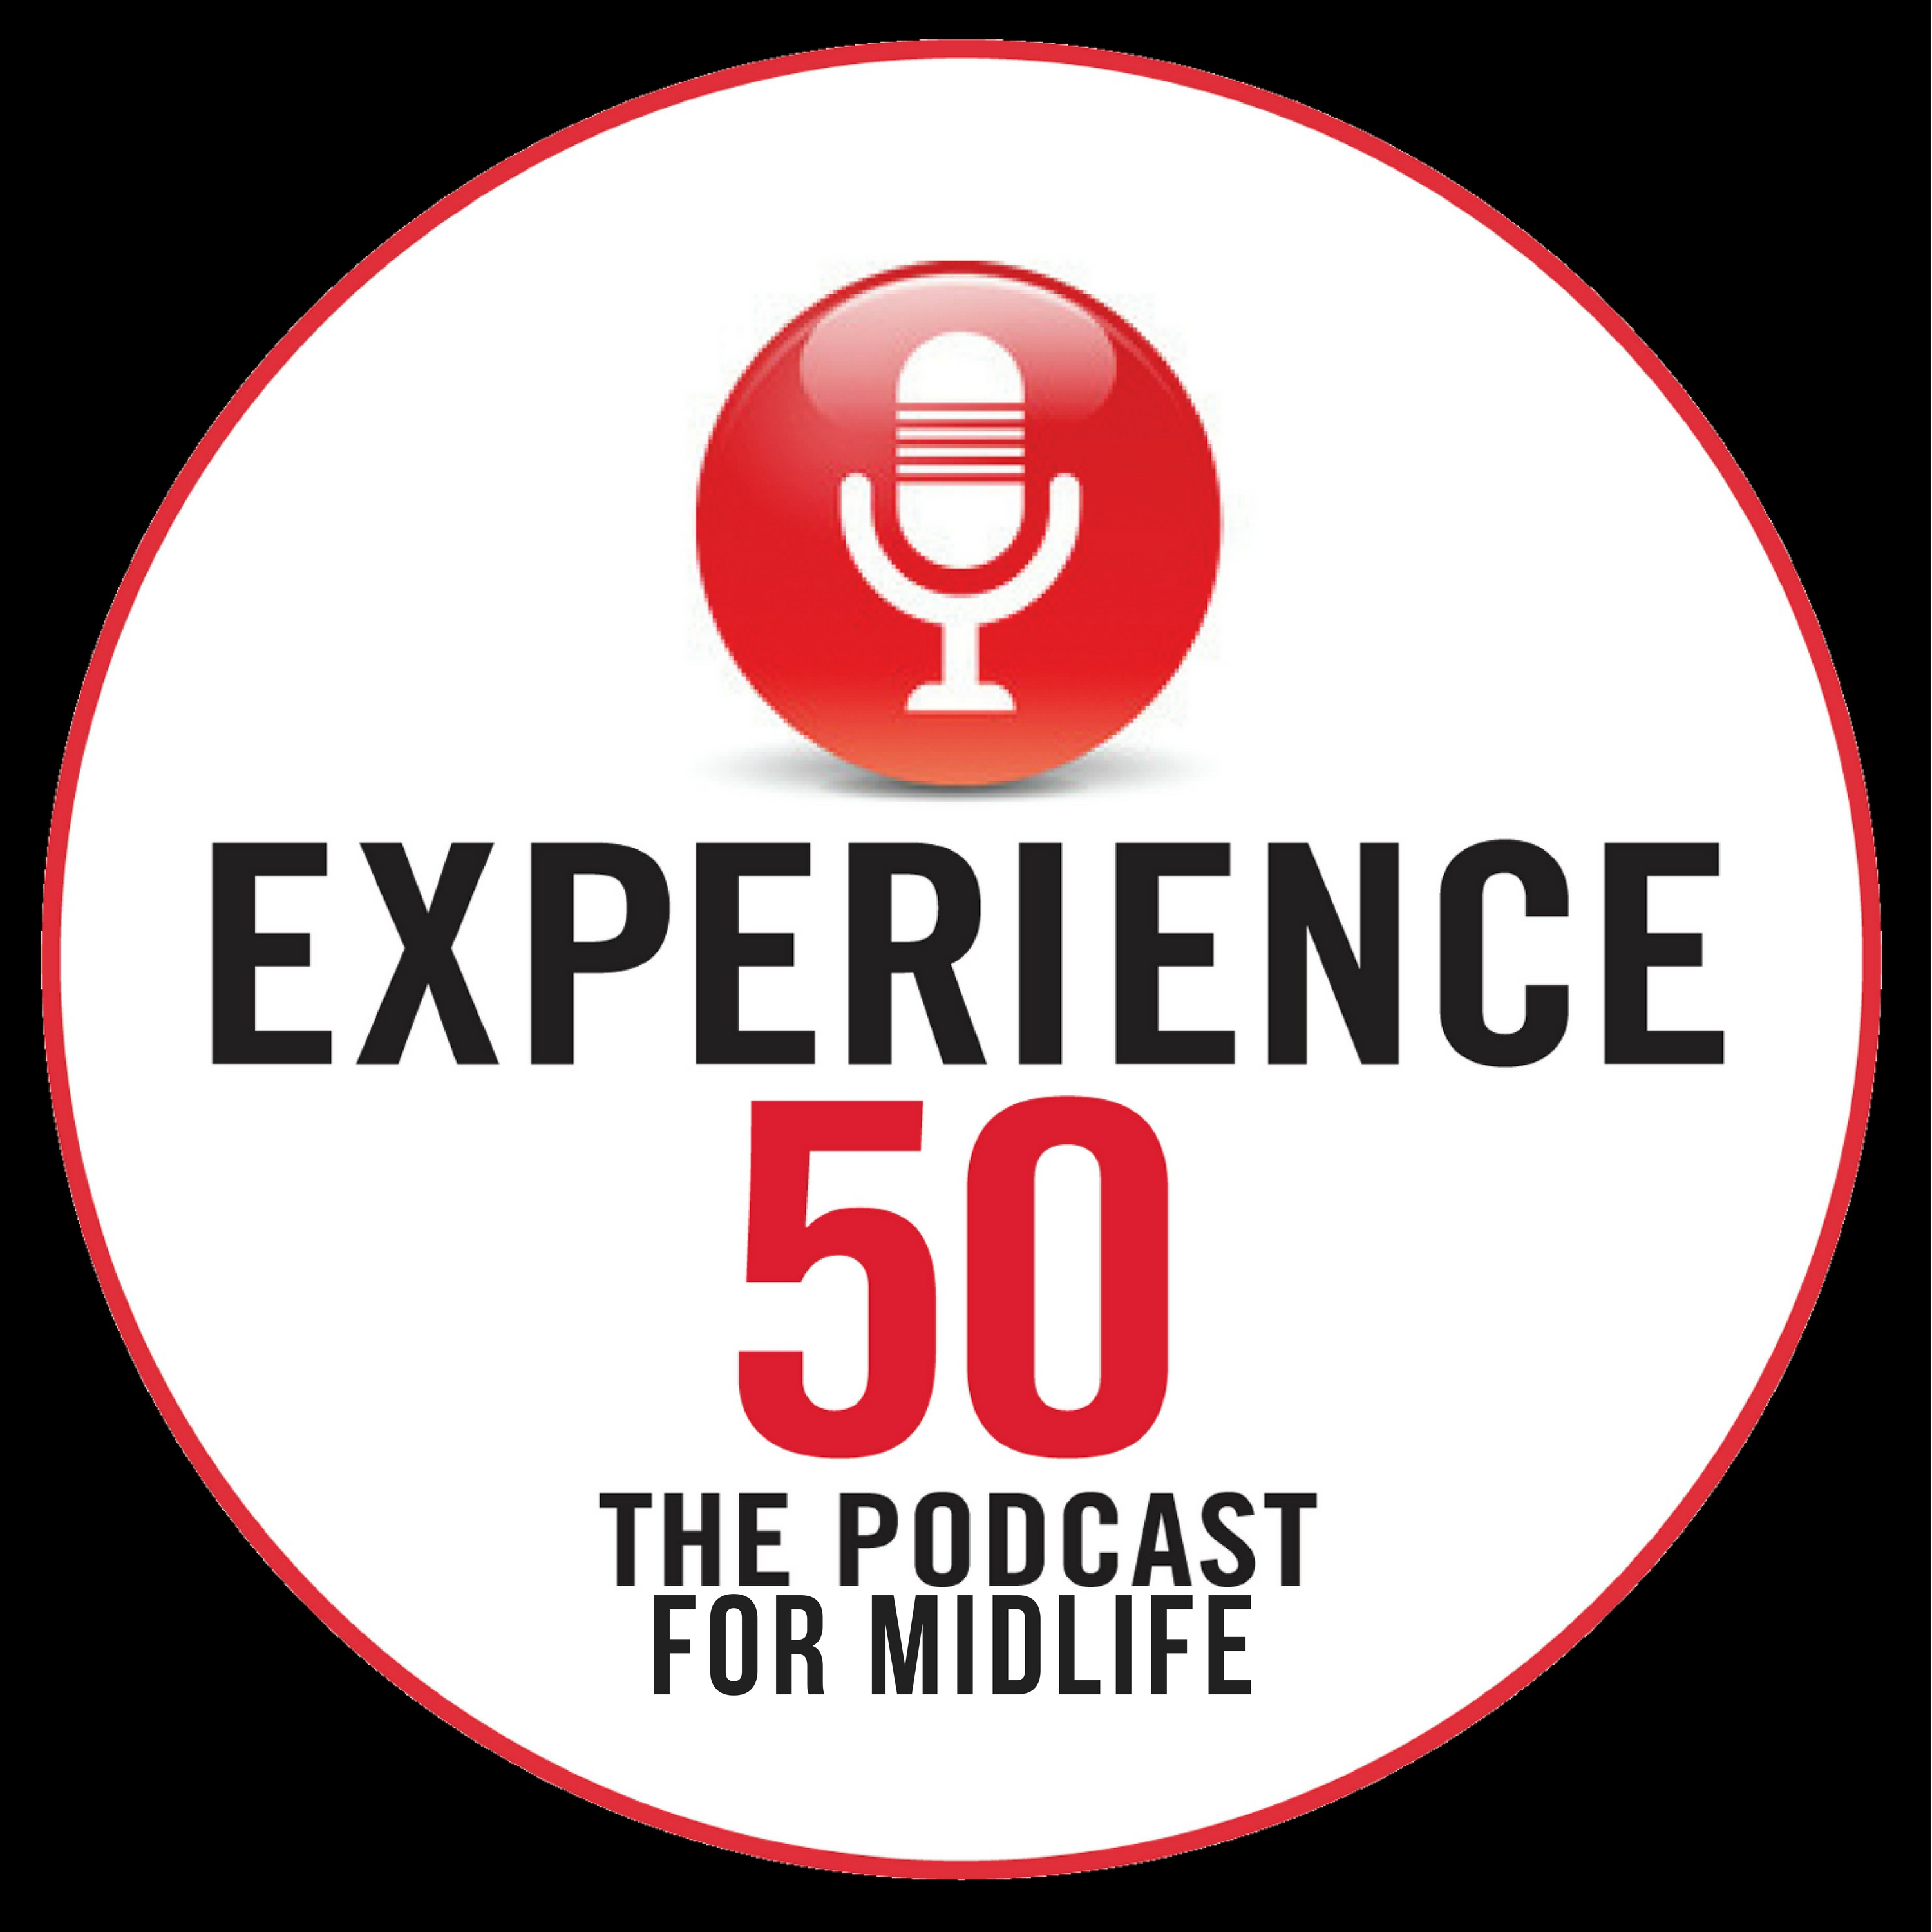 Experience 50 Podcast for Midlife show art